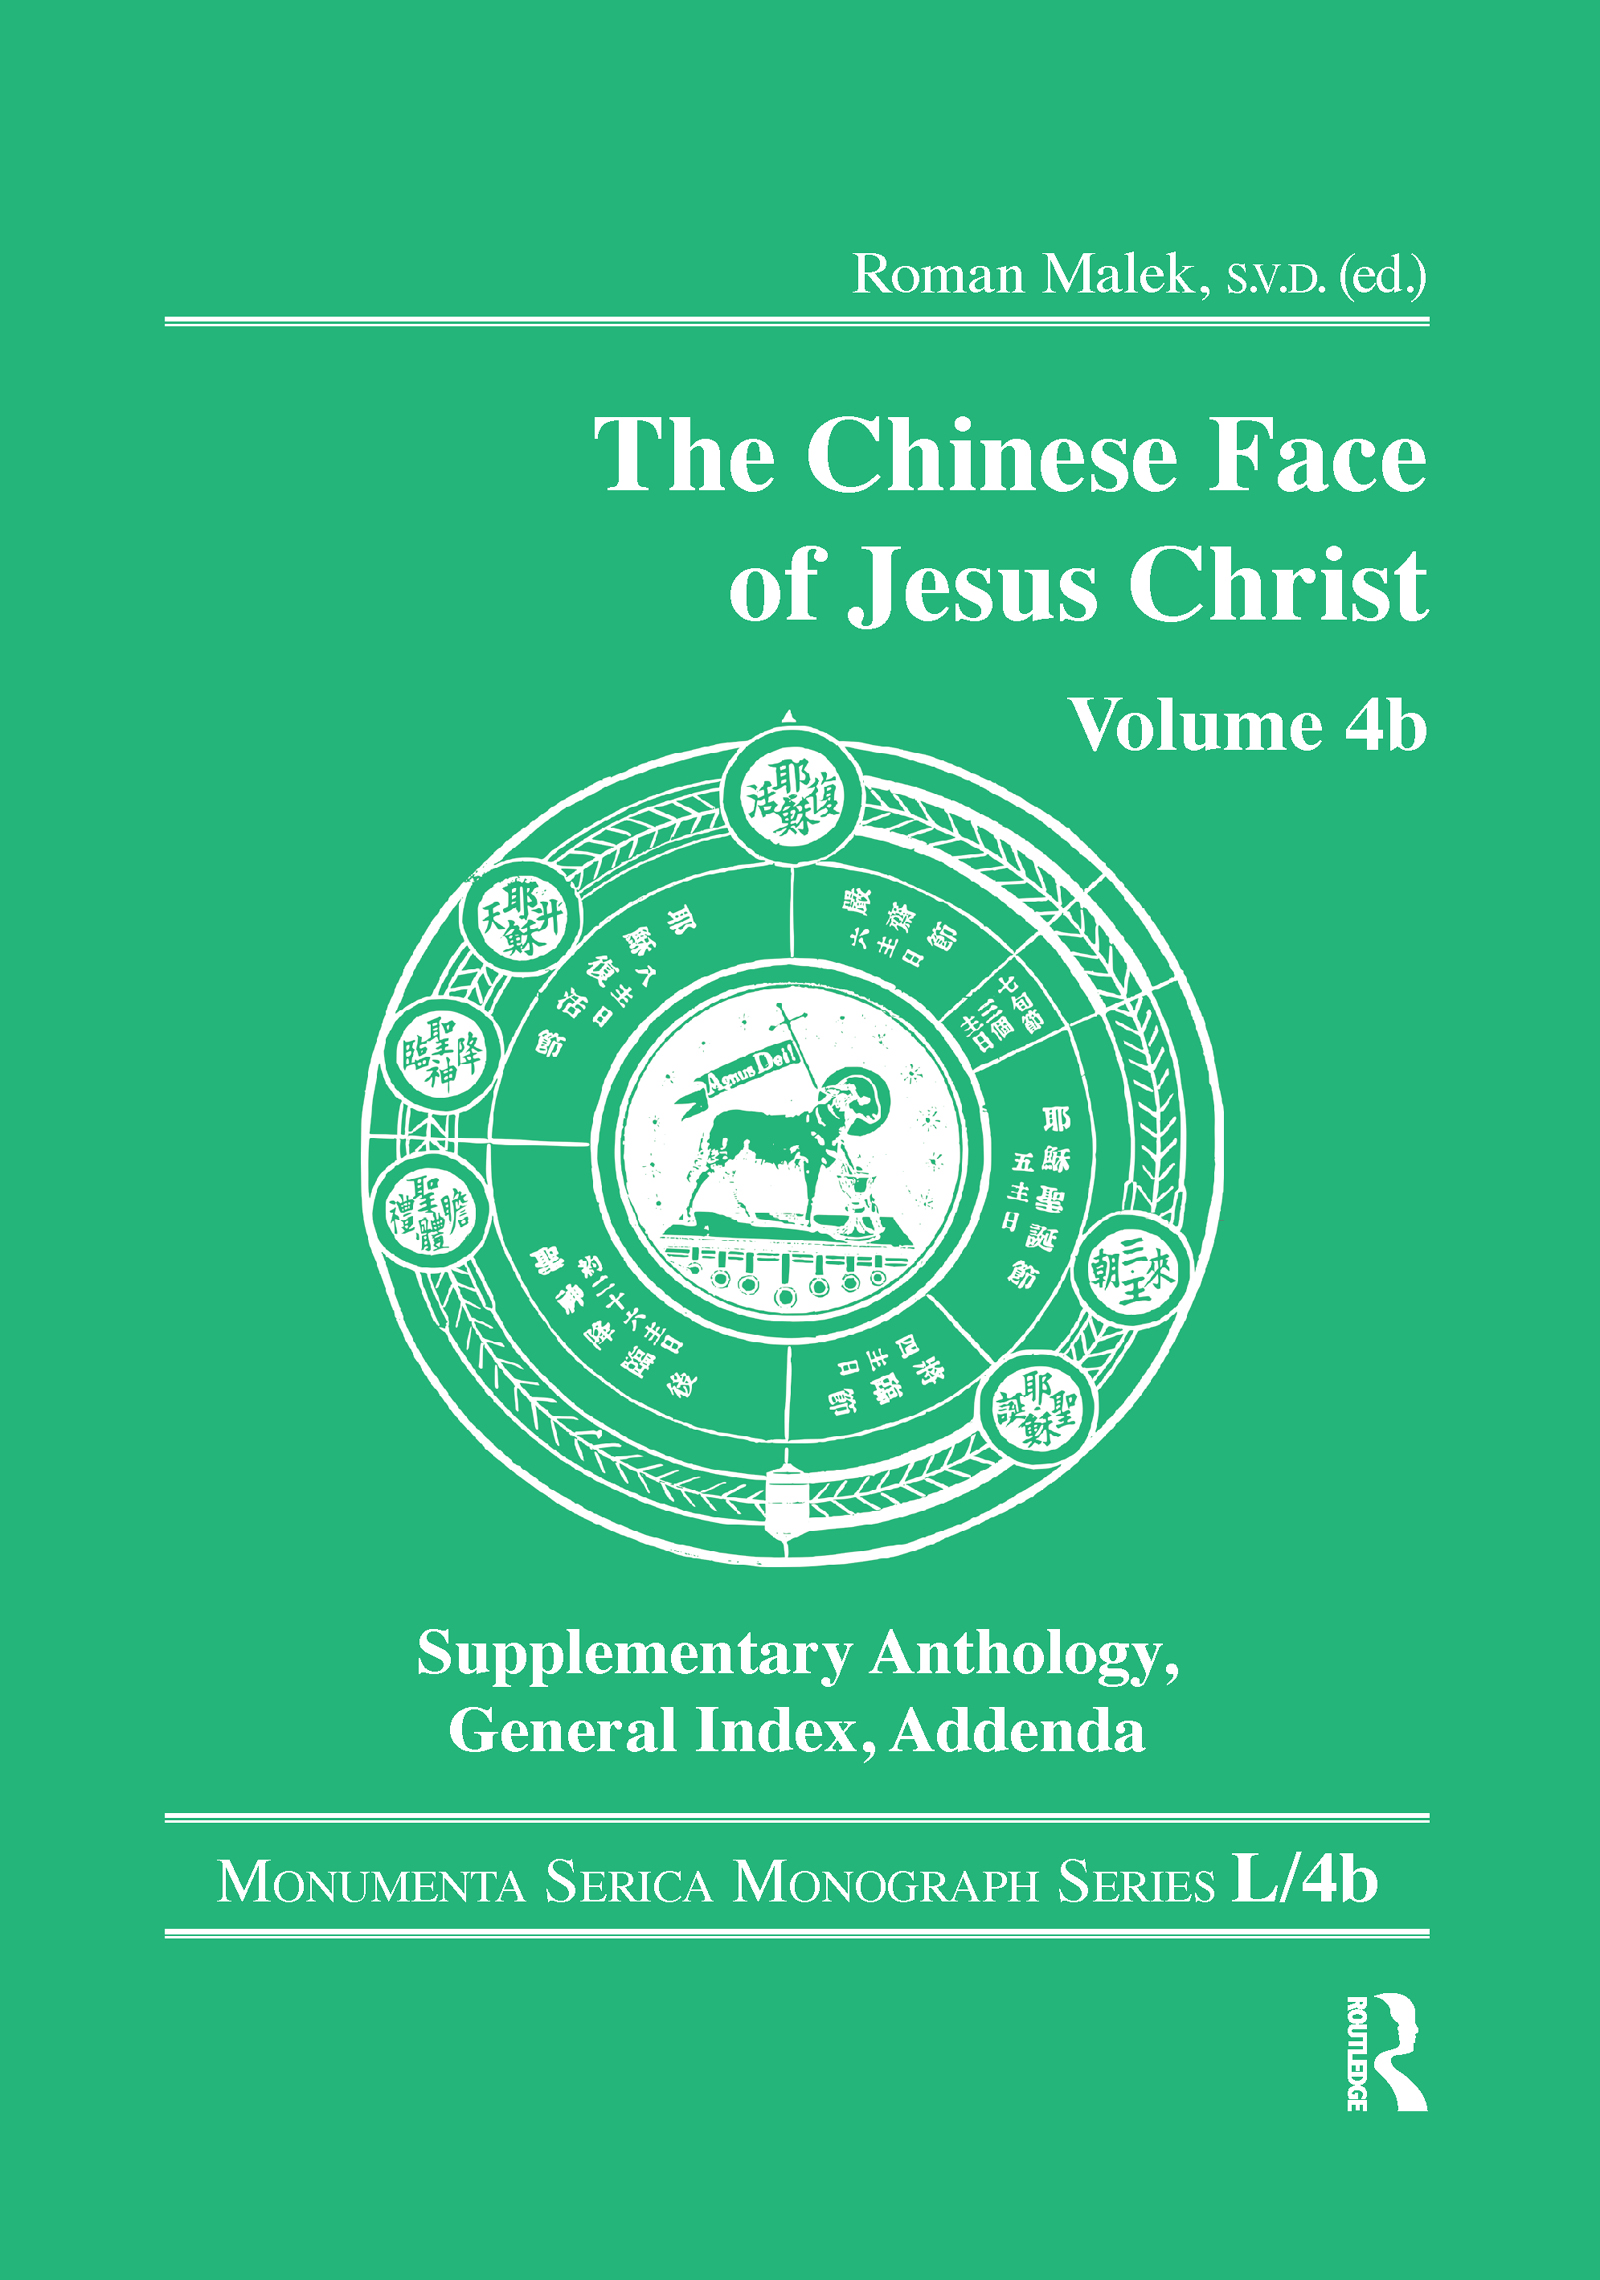 The Chinese Face of Jesus Christ